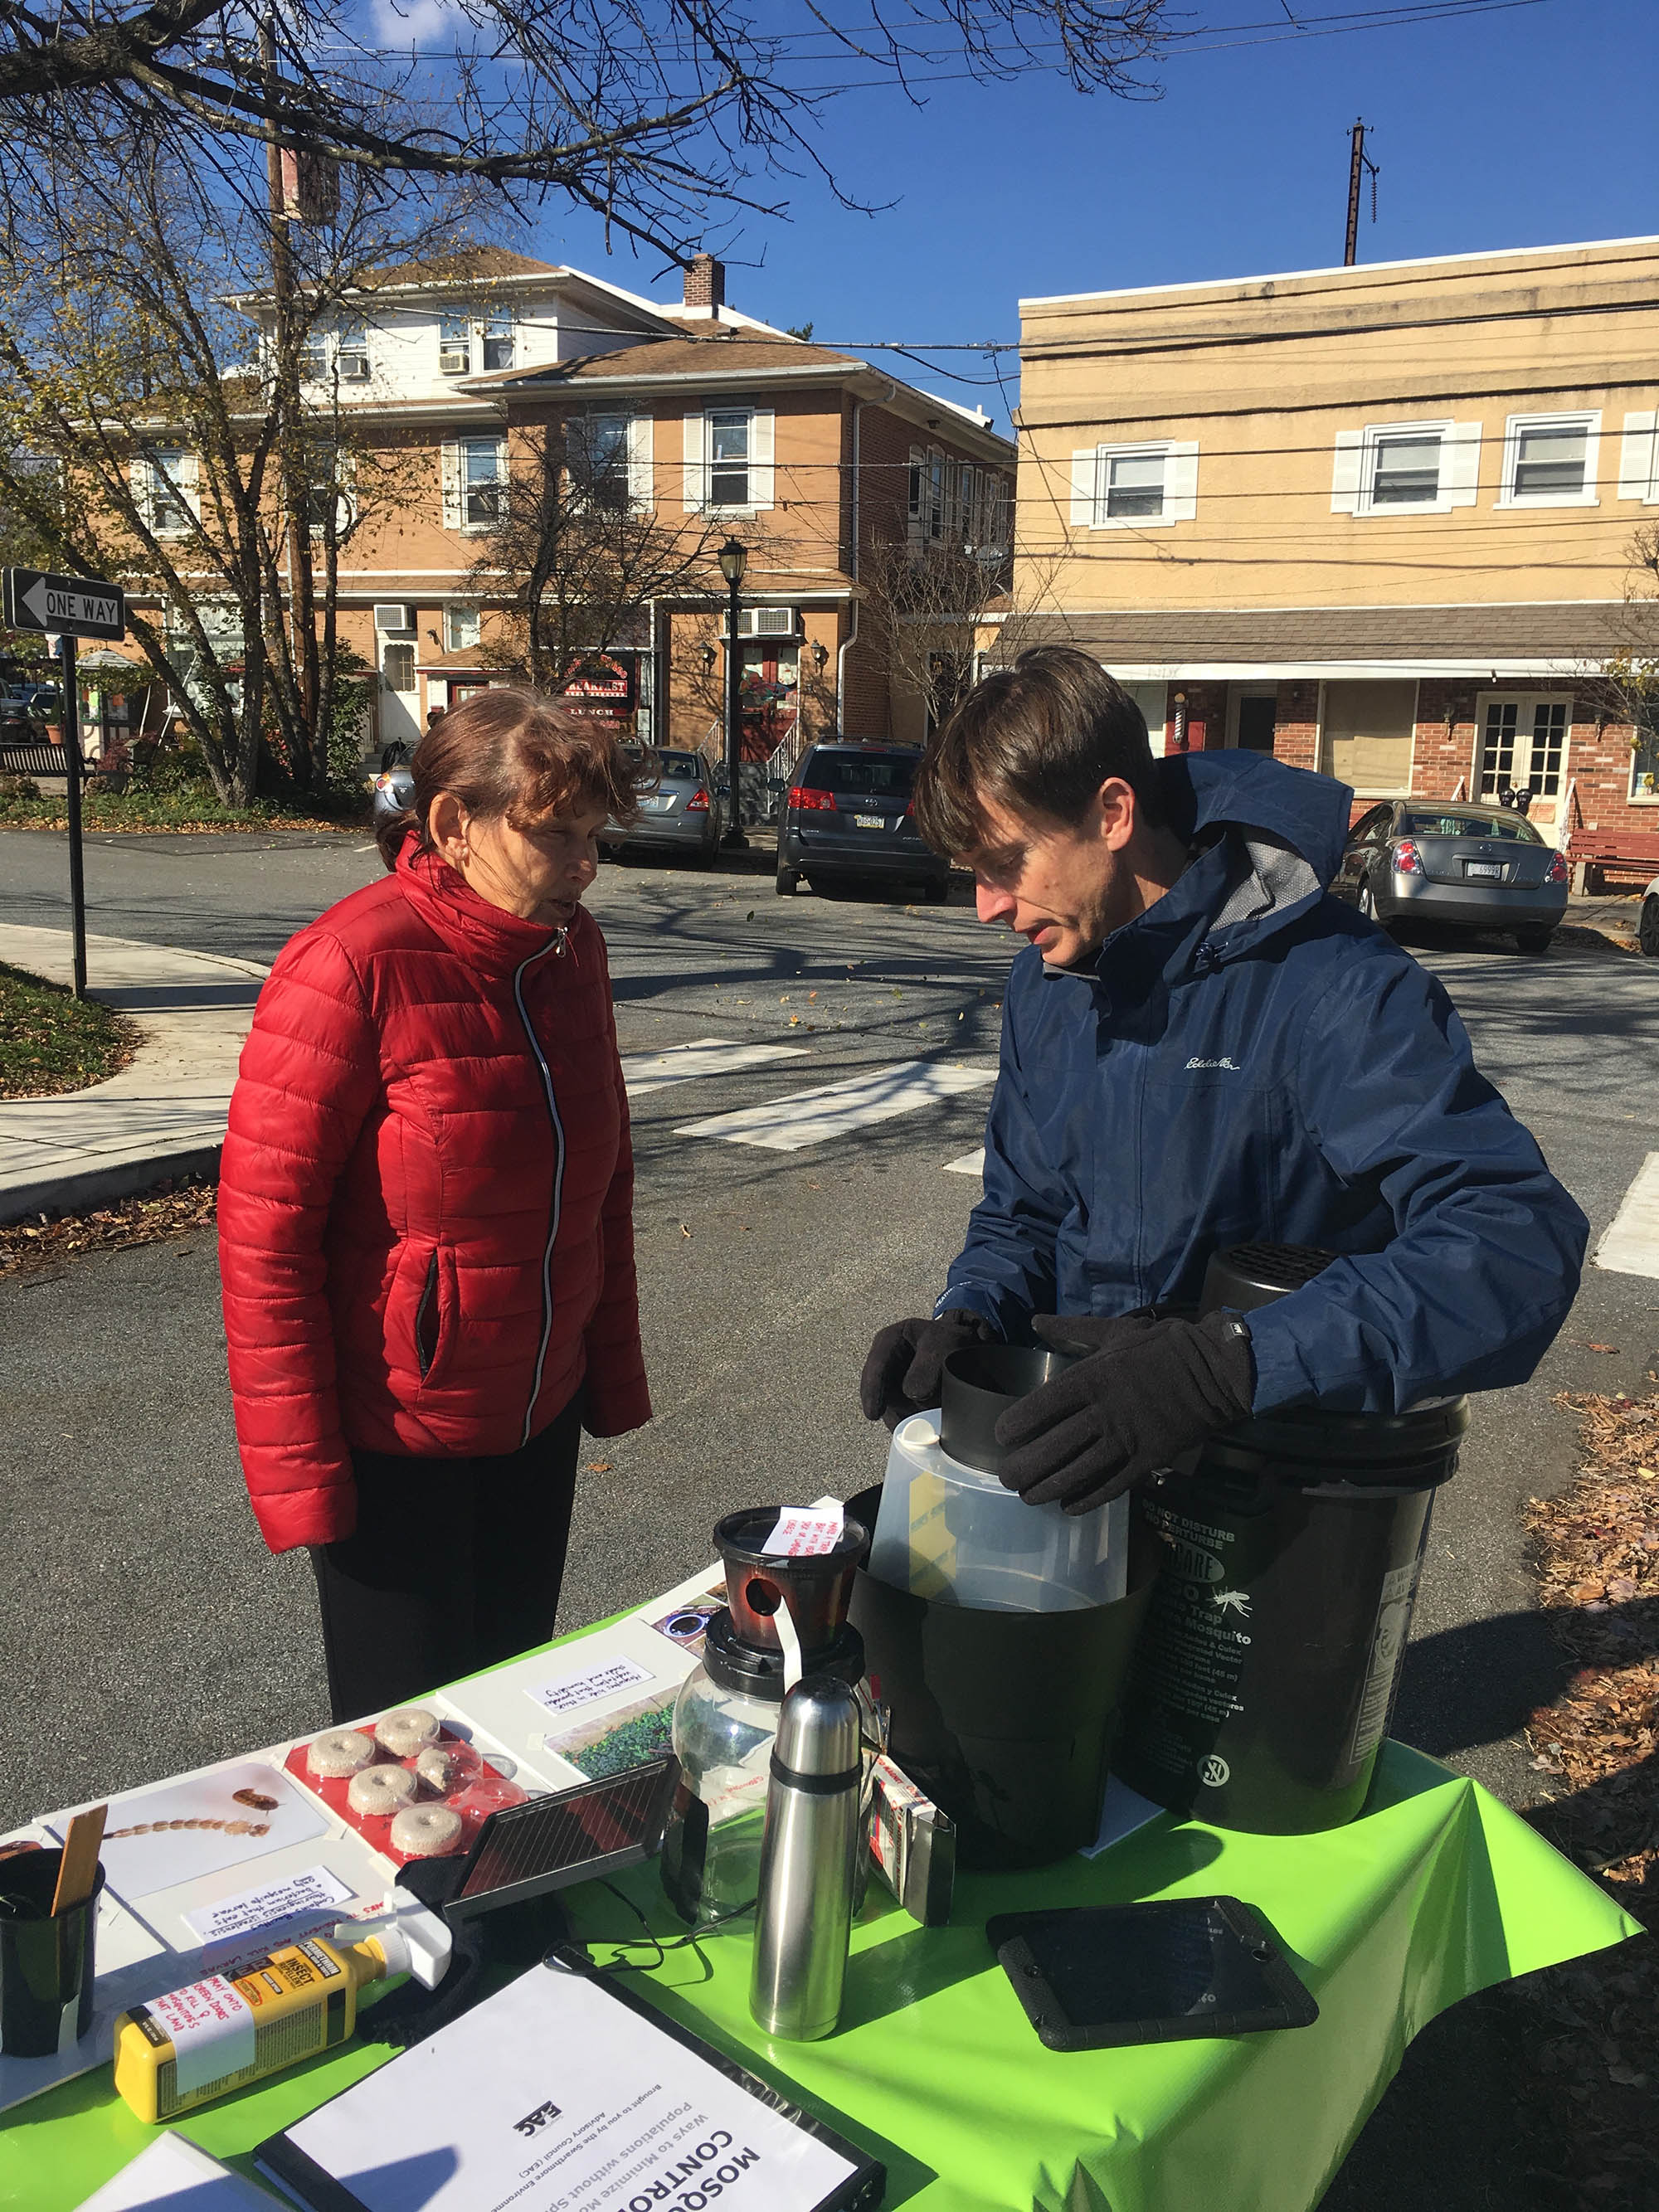 EAC volunteer Colin Purrington explains environmentally-friendly mosquito control options at the Swarthmore Farmers Market